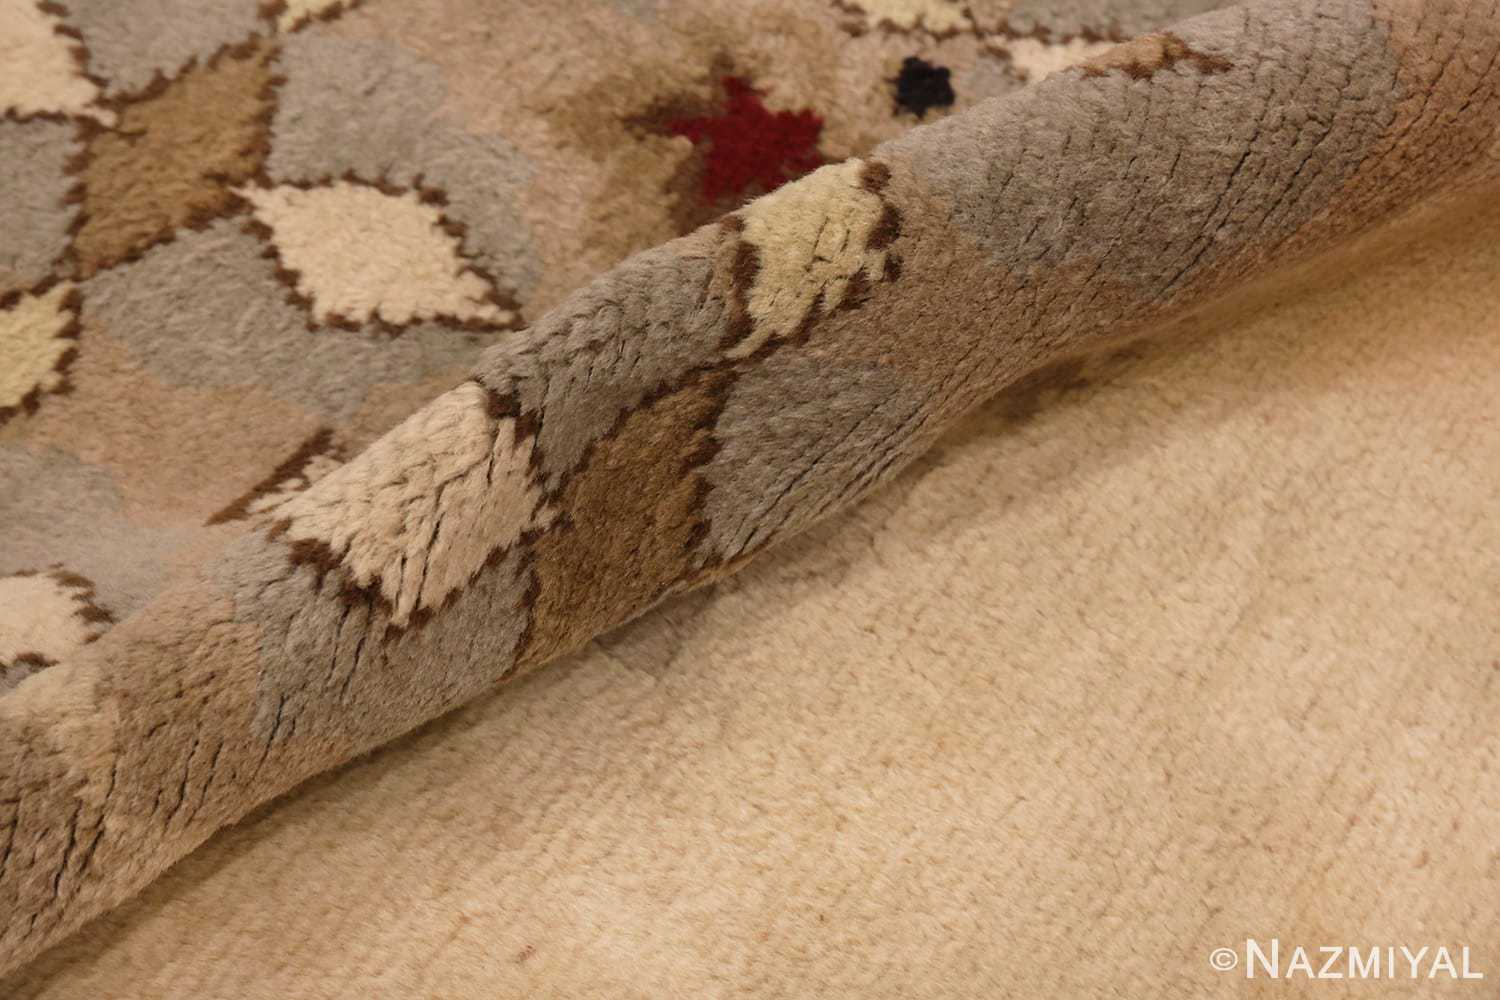 of Antique French Art Deco Leleu Rug #70027 from the collection of Nazmiyal Antique Rugs NYC